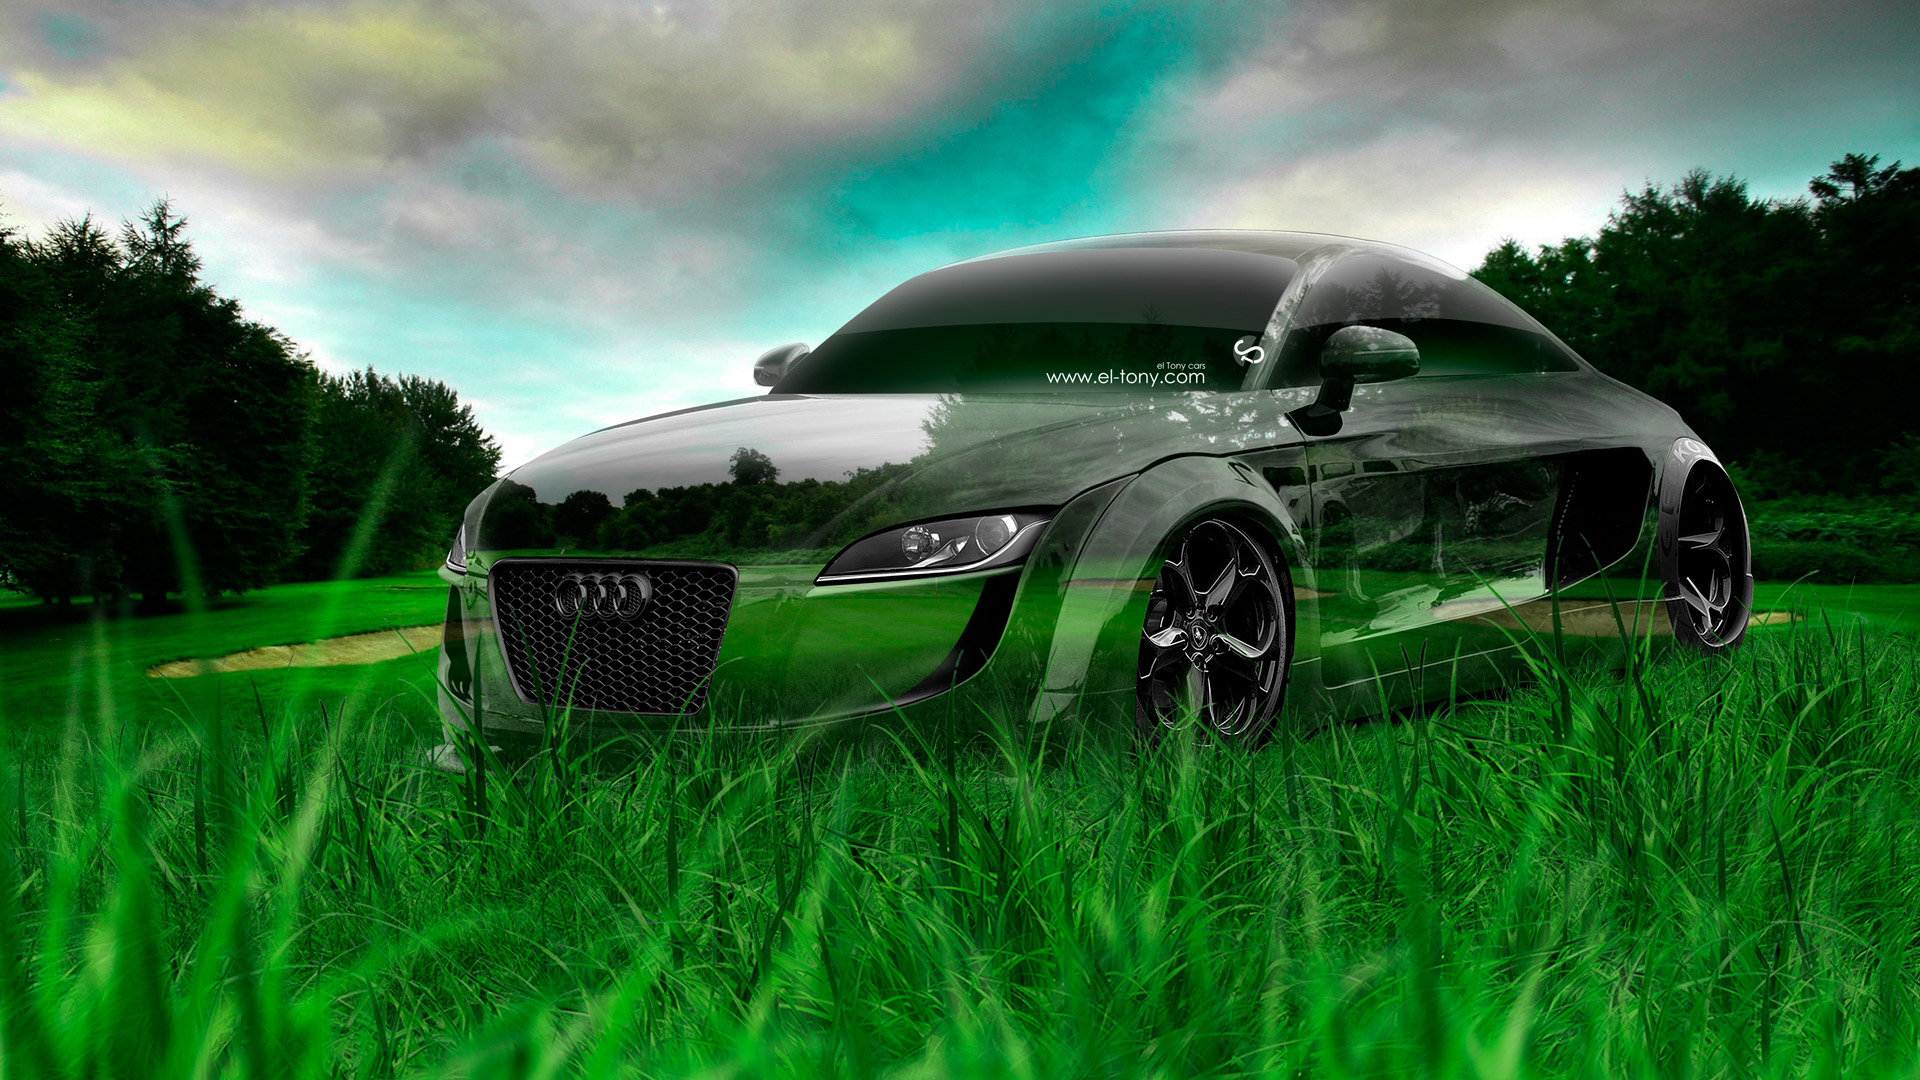 Awesome Exceptionnel Audi R8 Crystal Nature Car 2014 · Audi TT Tuning Crystal  Nature Car 2014